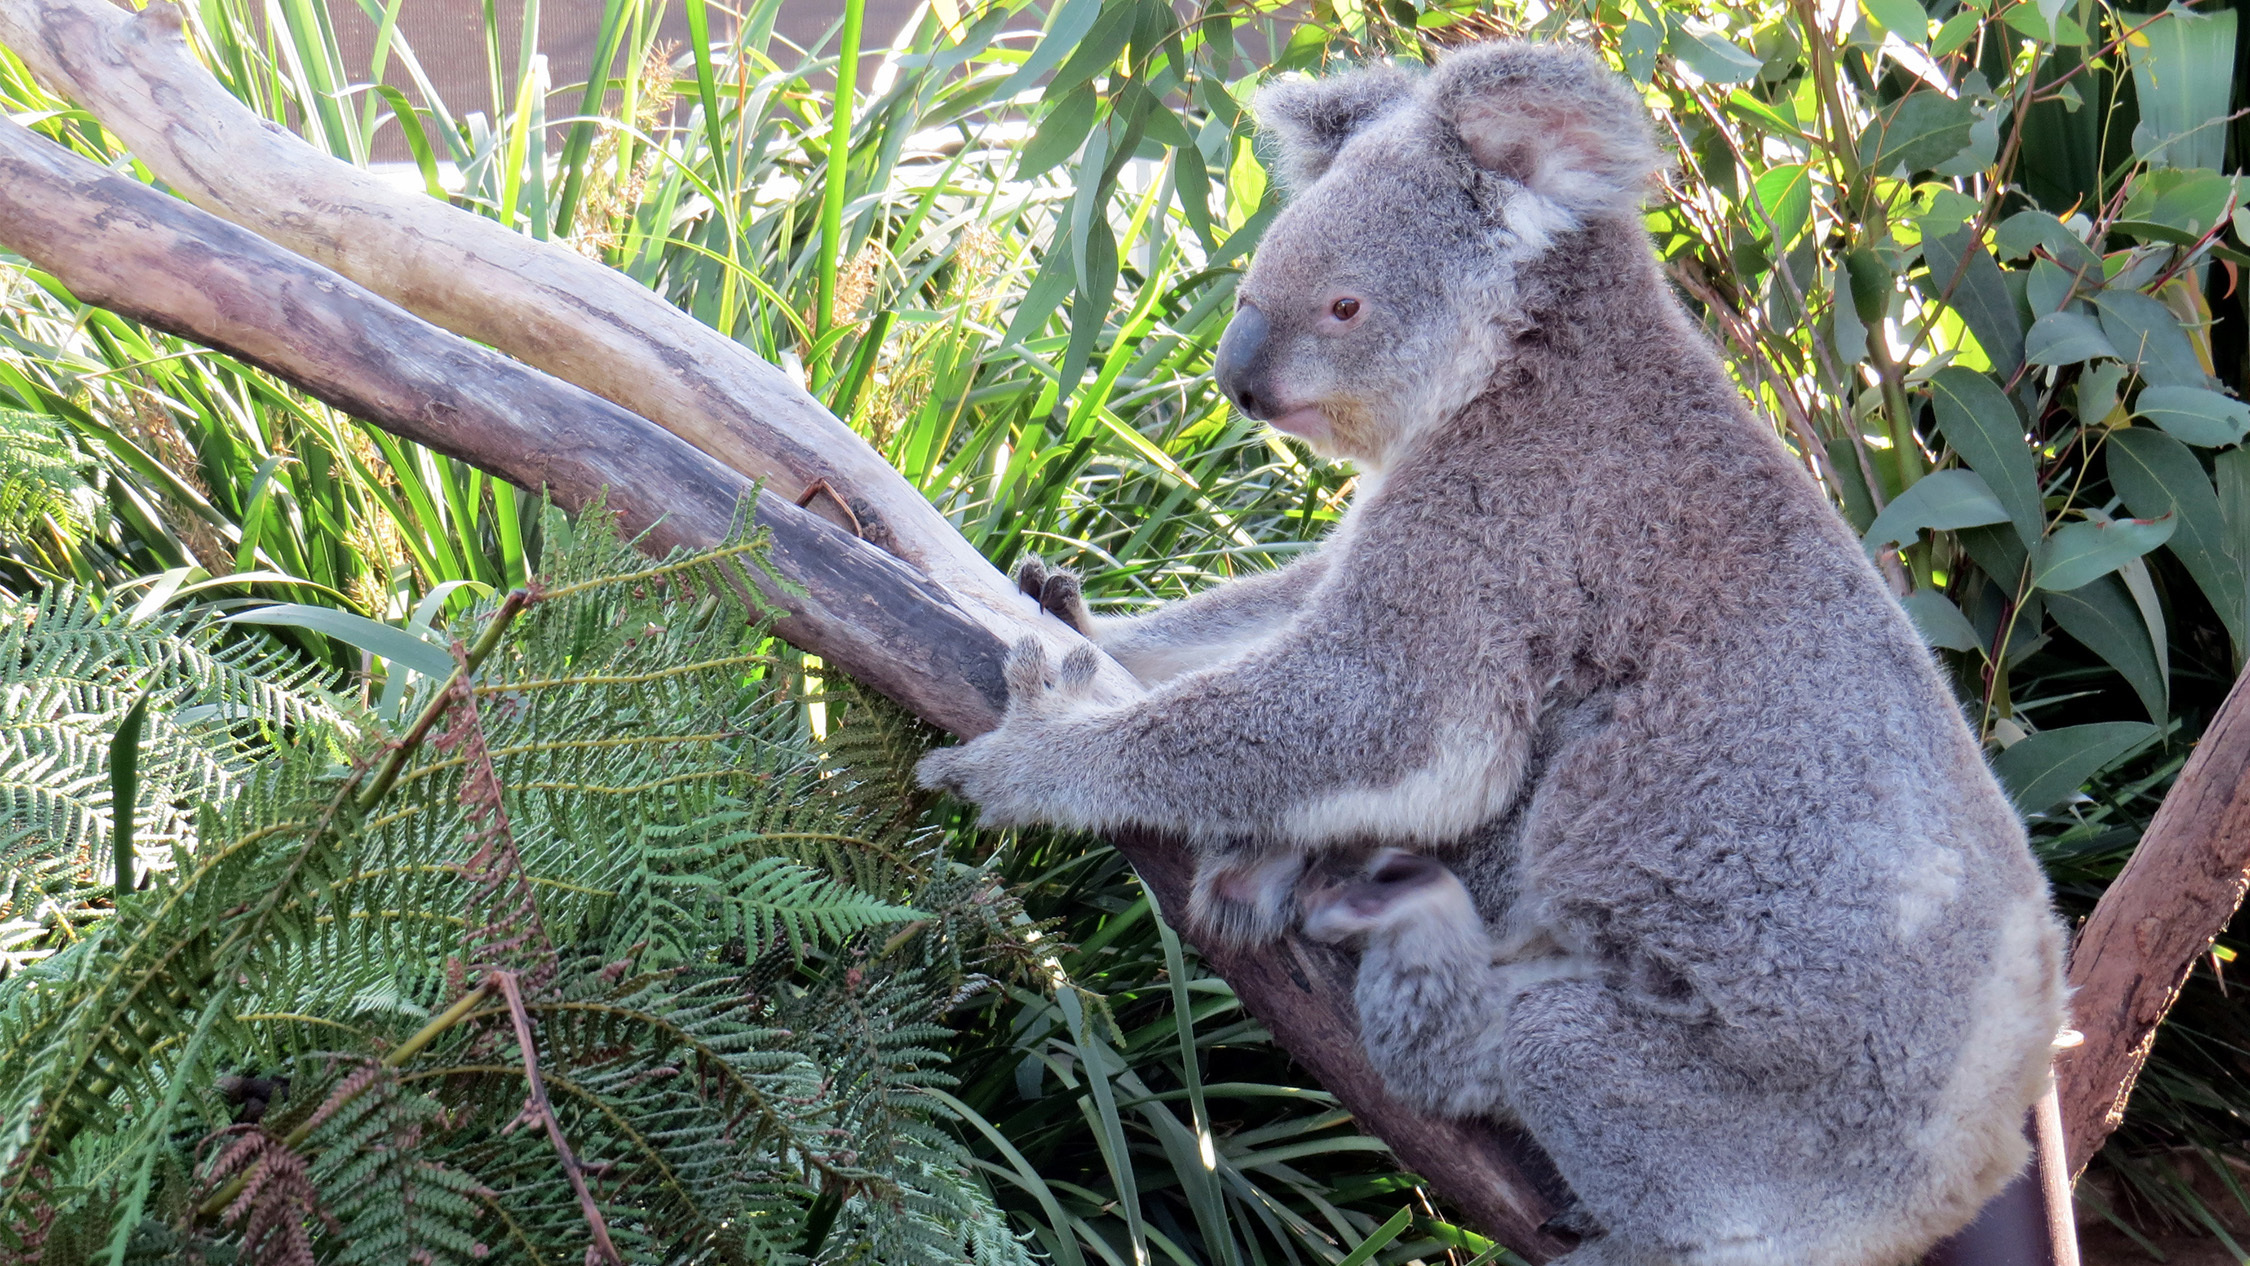 Where to see animals in Sydney